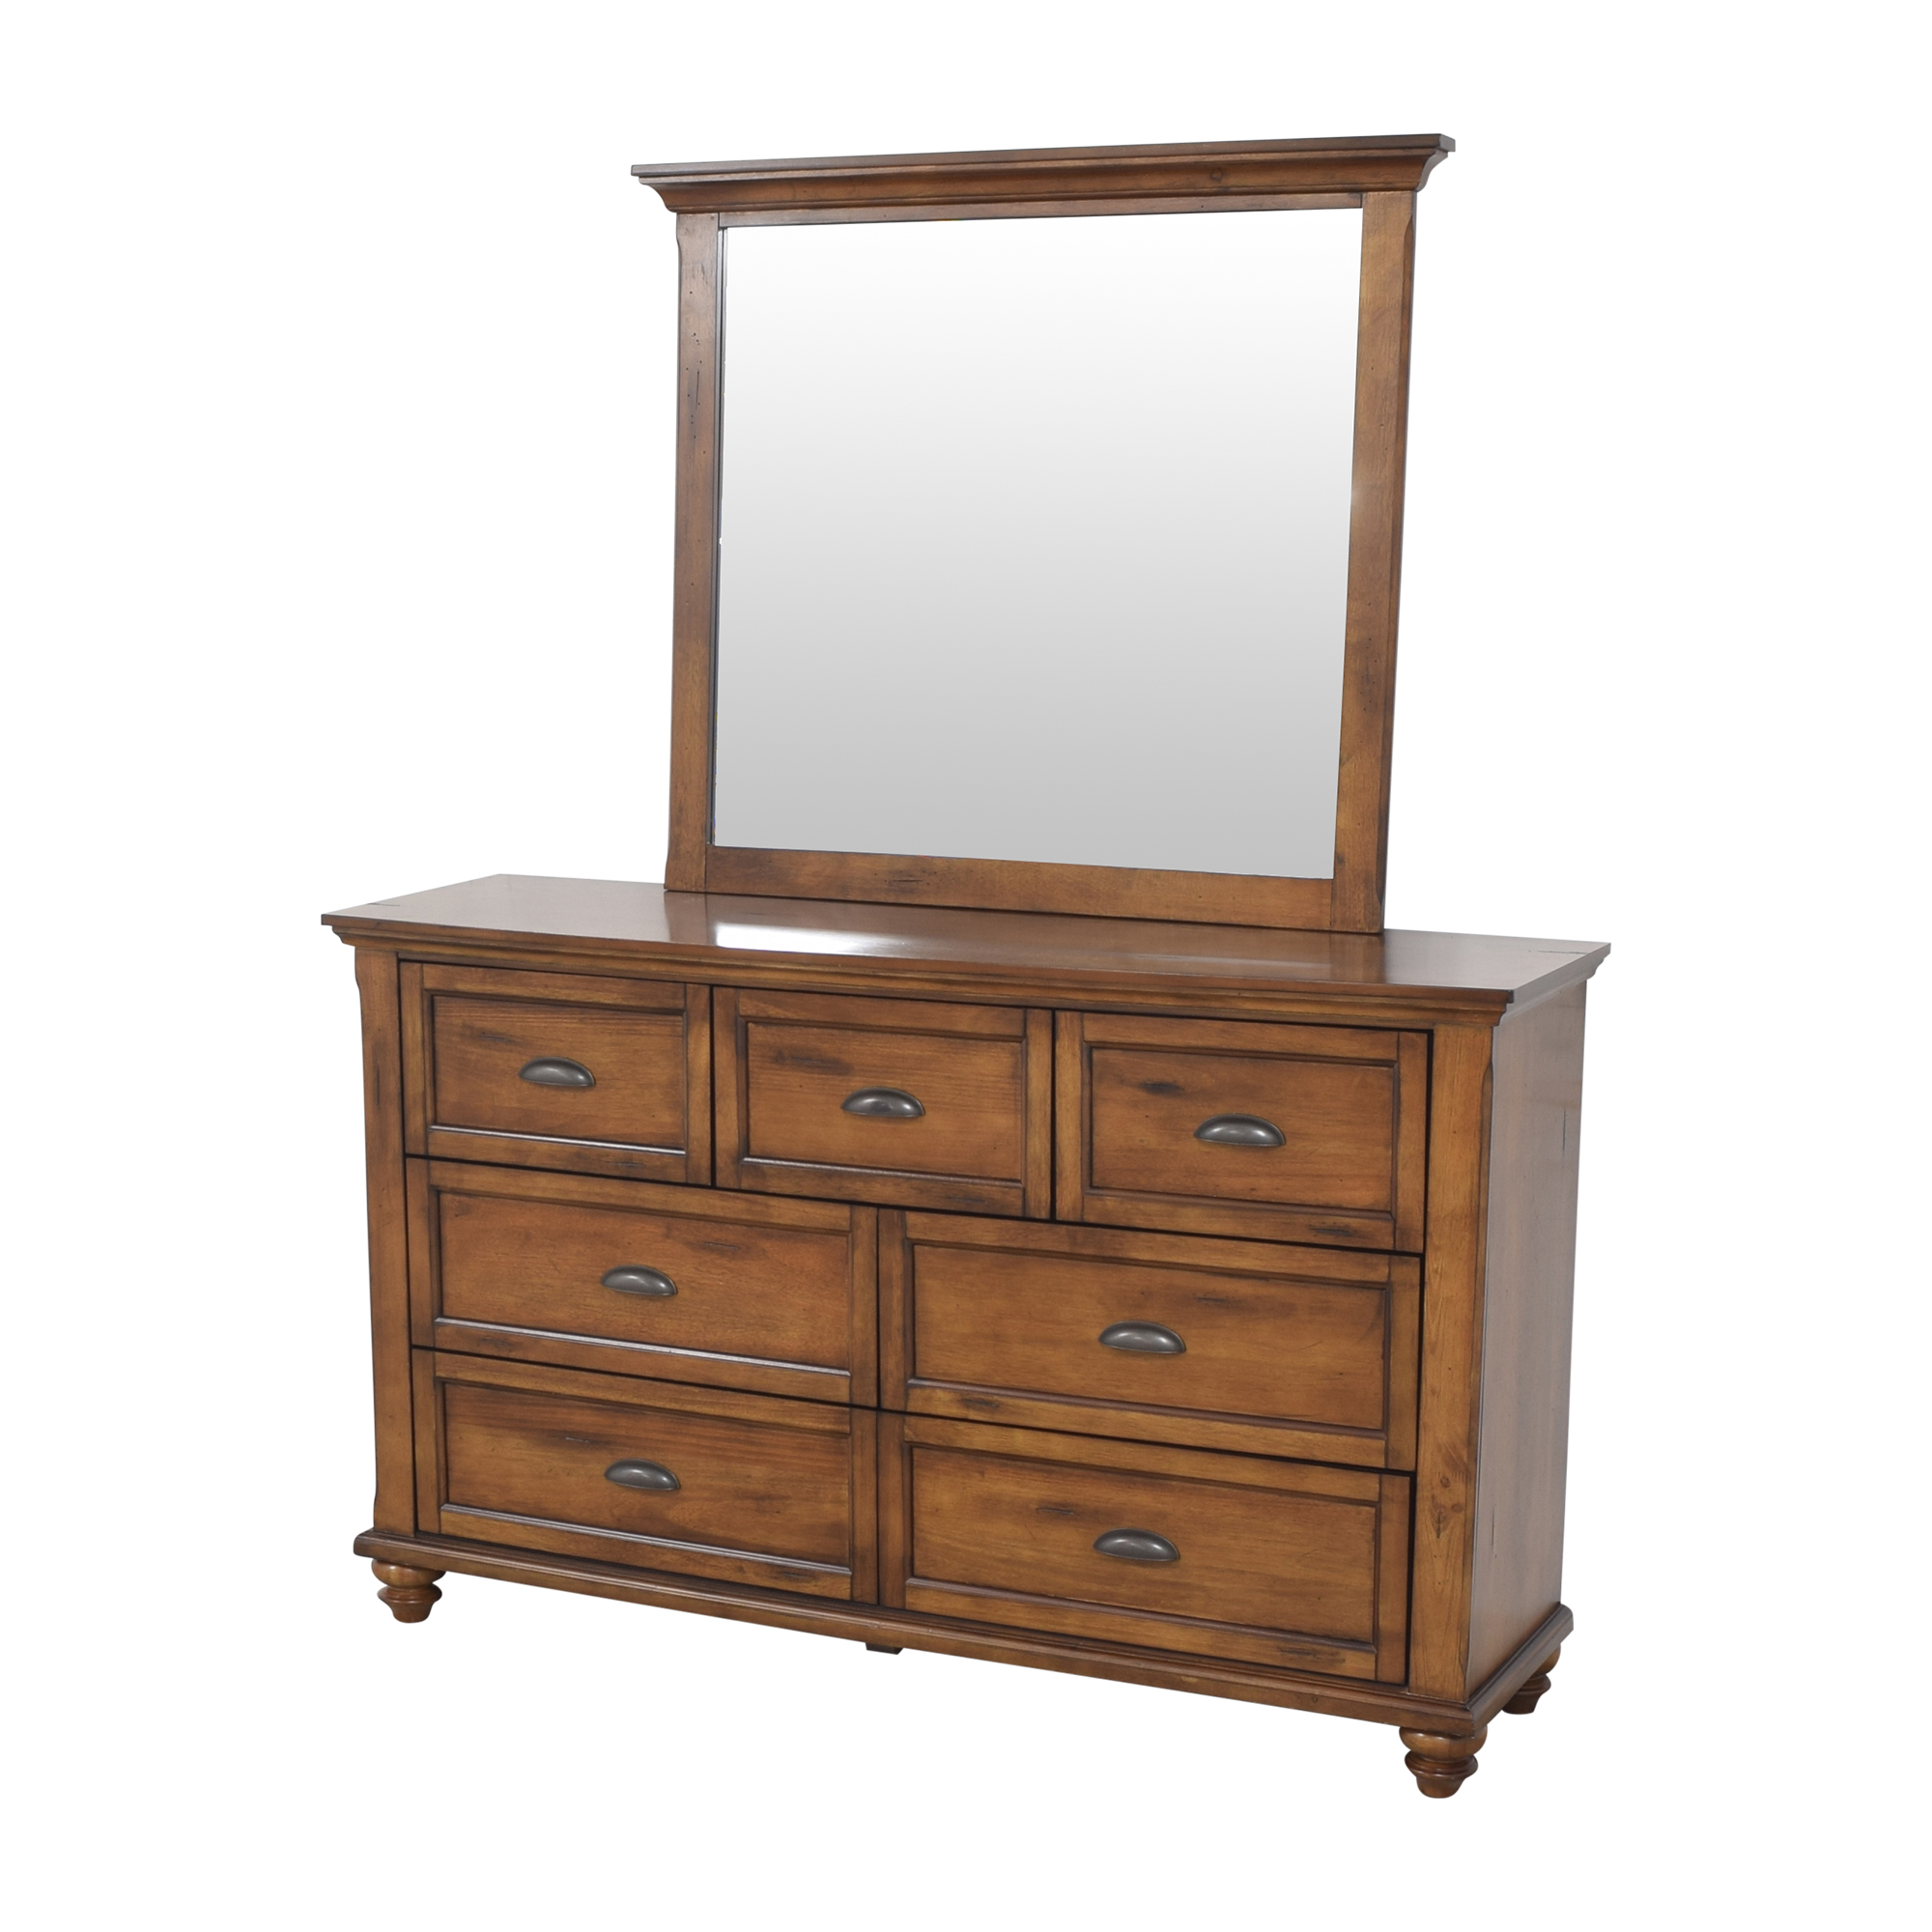 Simmons Simmons Remington Dresser with Mirror discount